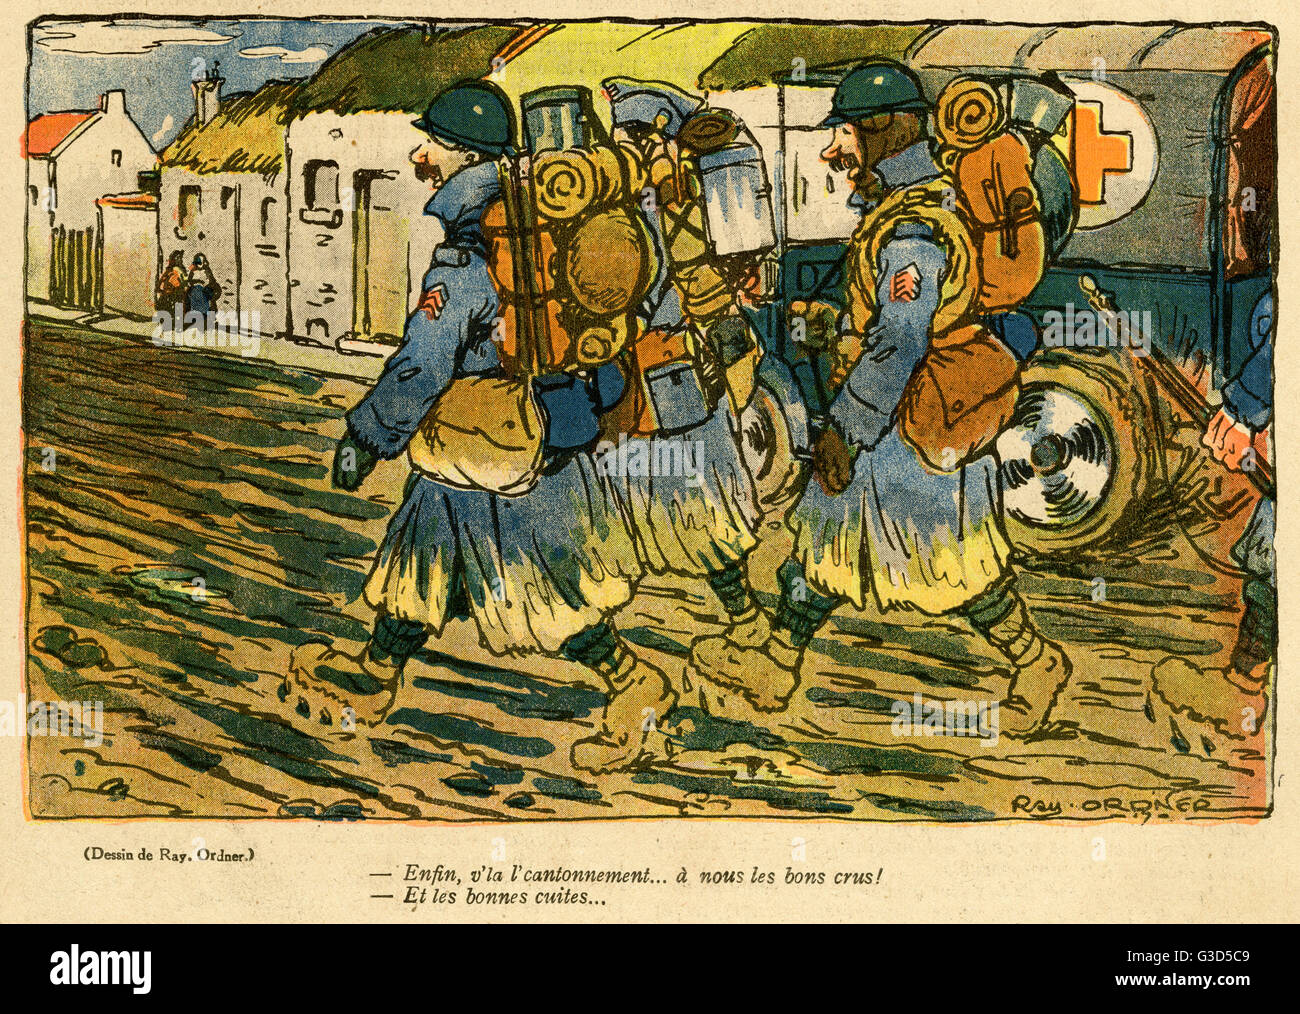 Cartoon, Soldiers approach their new billet, hoping for good cooking and good wine.      Date: 1918 - Stock Image